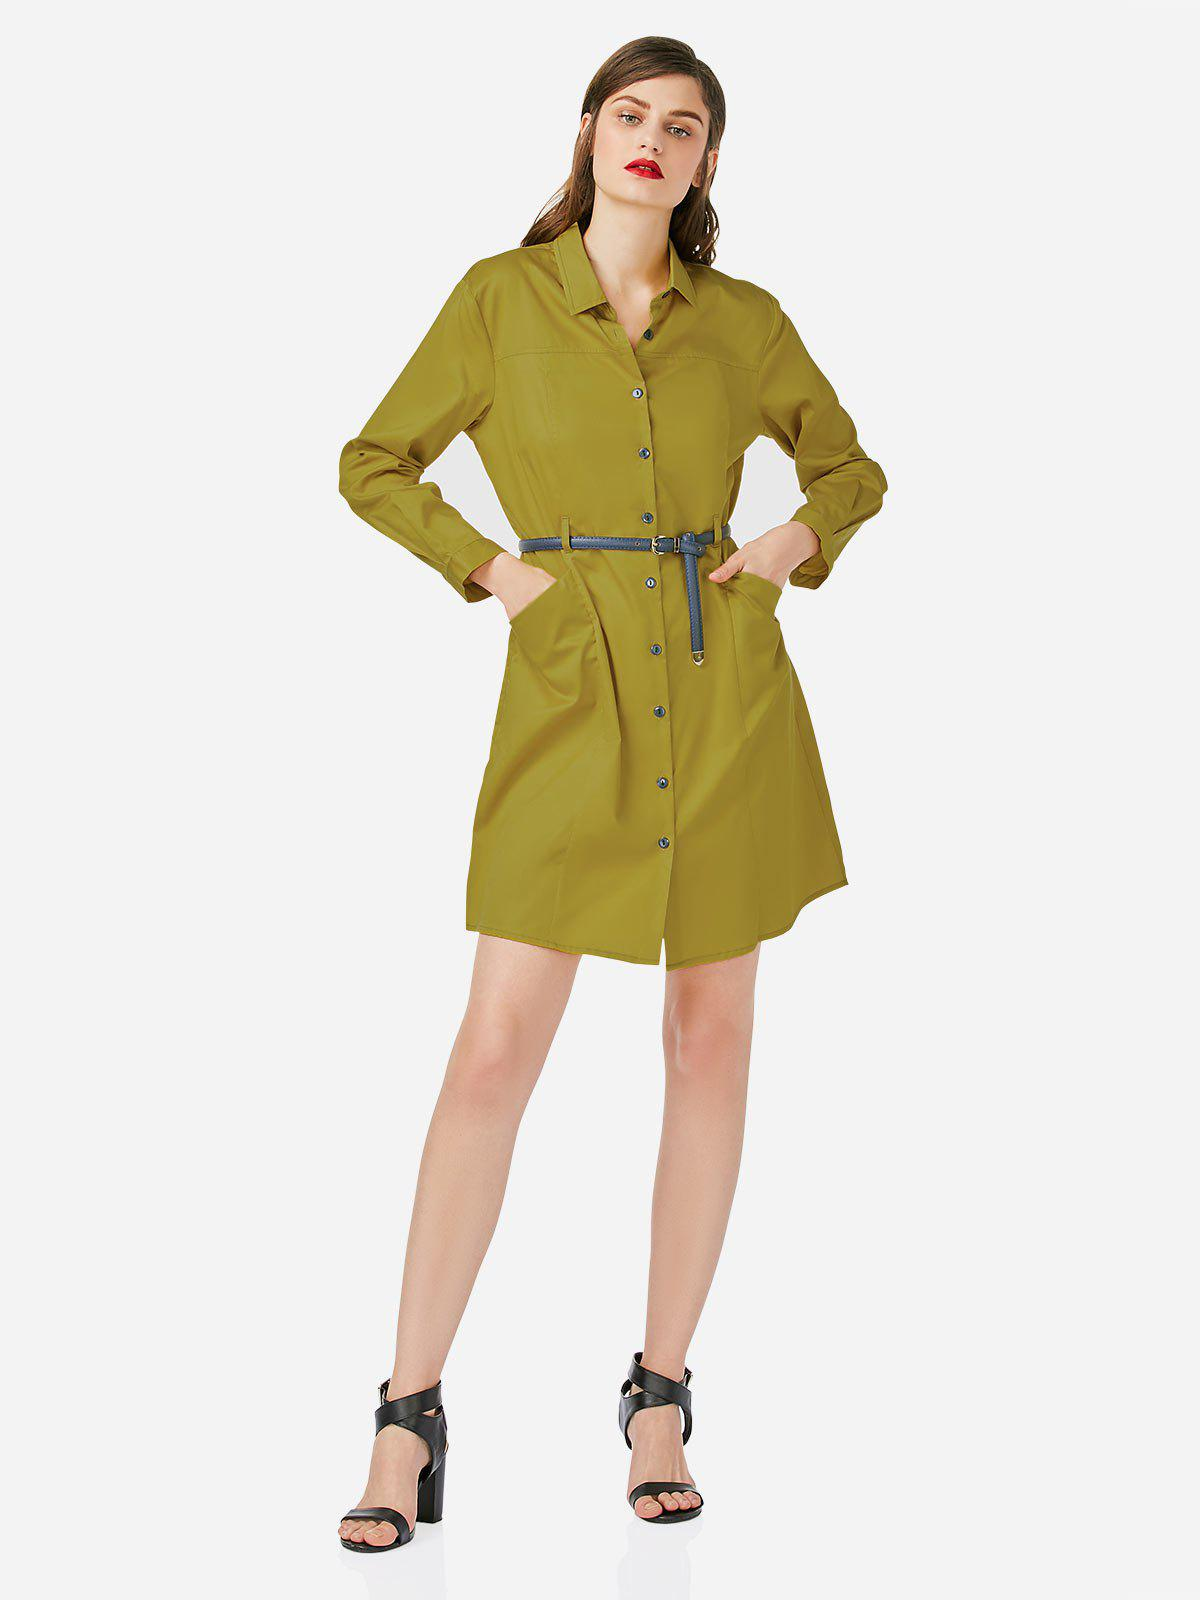 Hot Collar Shirt Dress